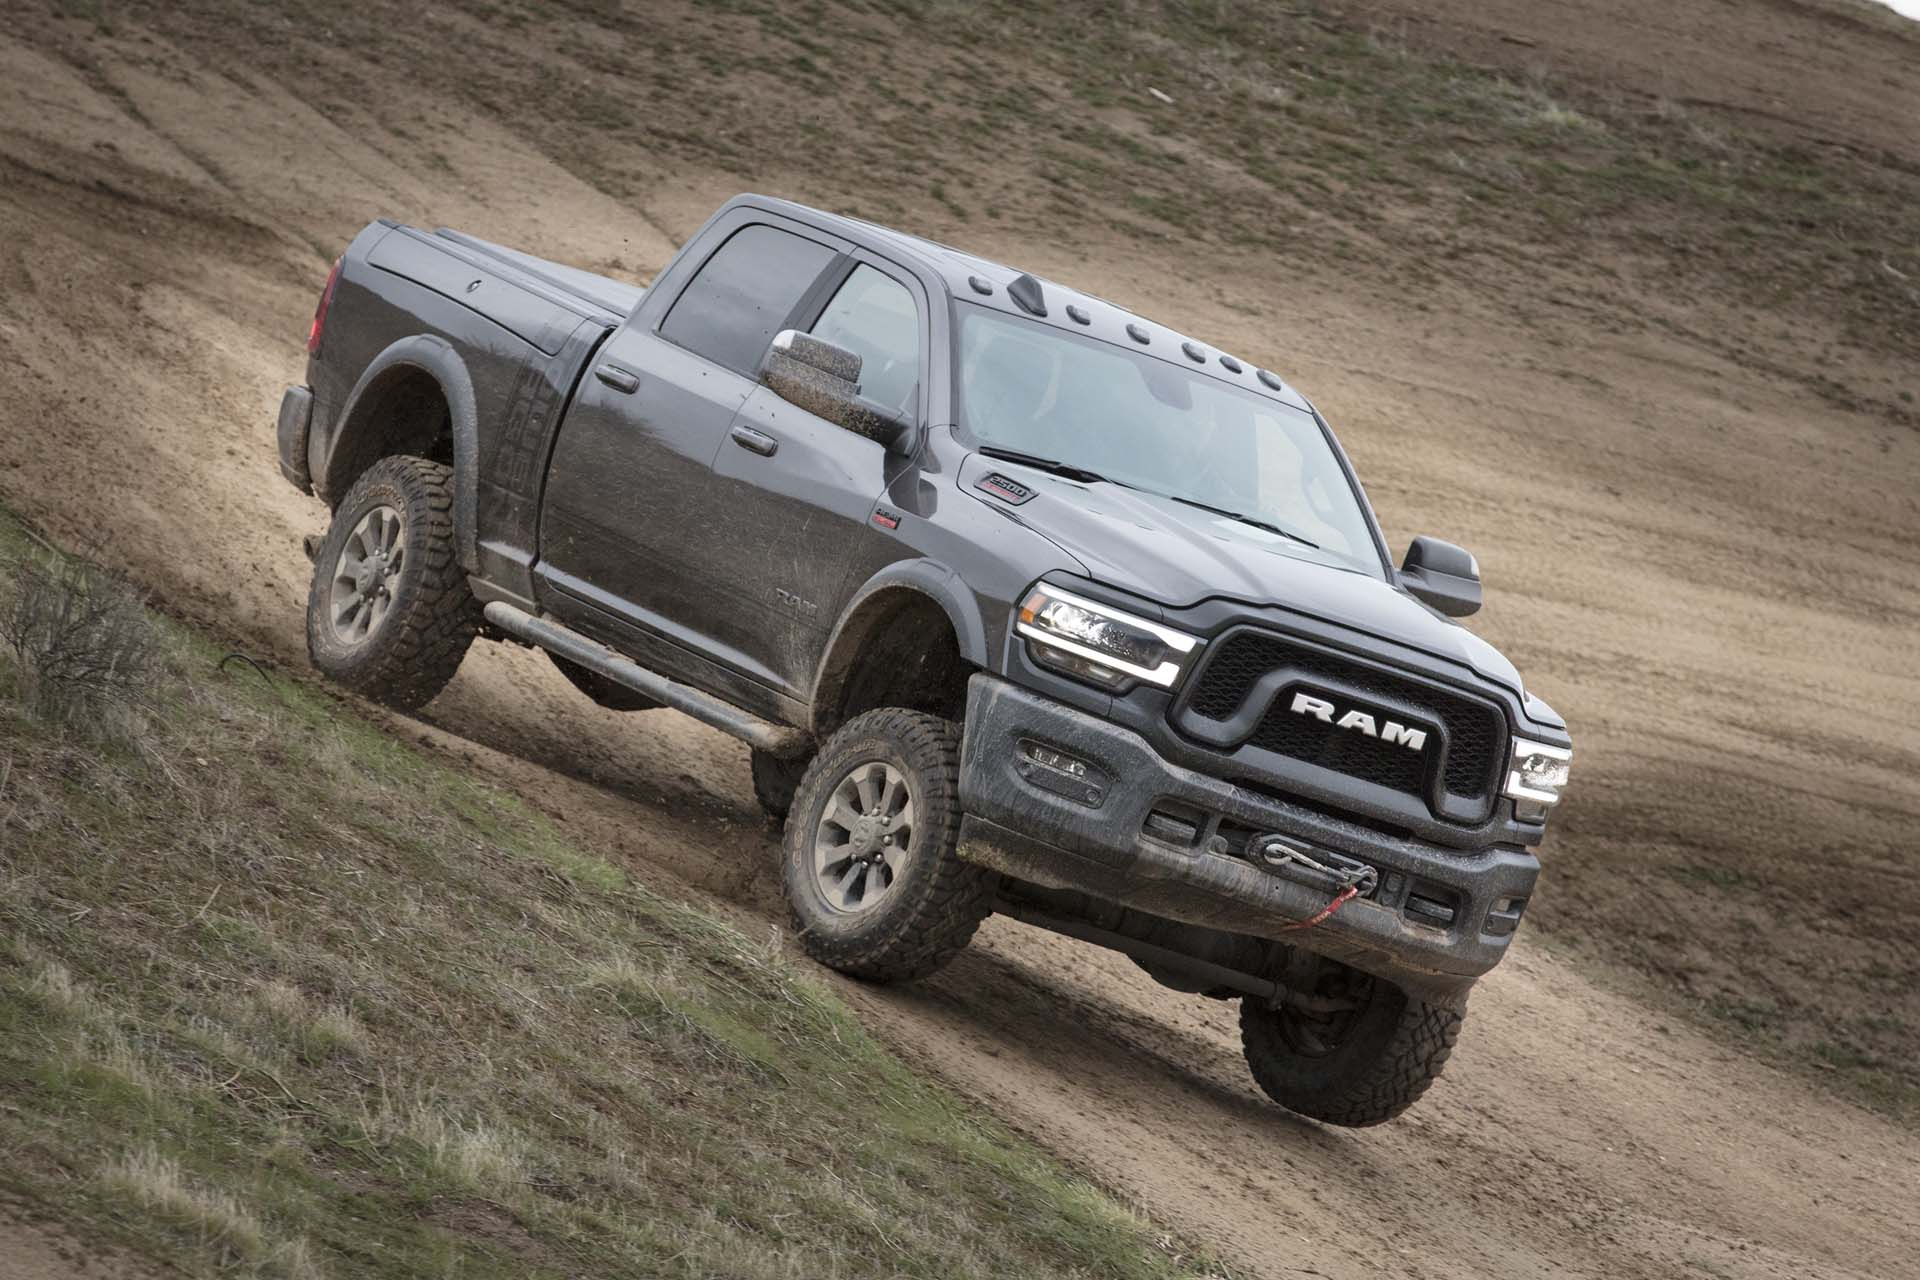 2019 Ram 2500 Power Wagon (Color: Granite Crystal Metallic) Front Three-Quarter Wallpapers #47 of 64